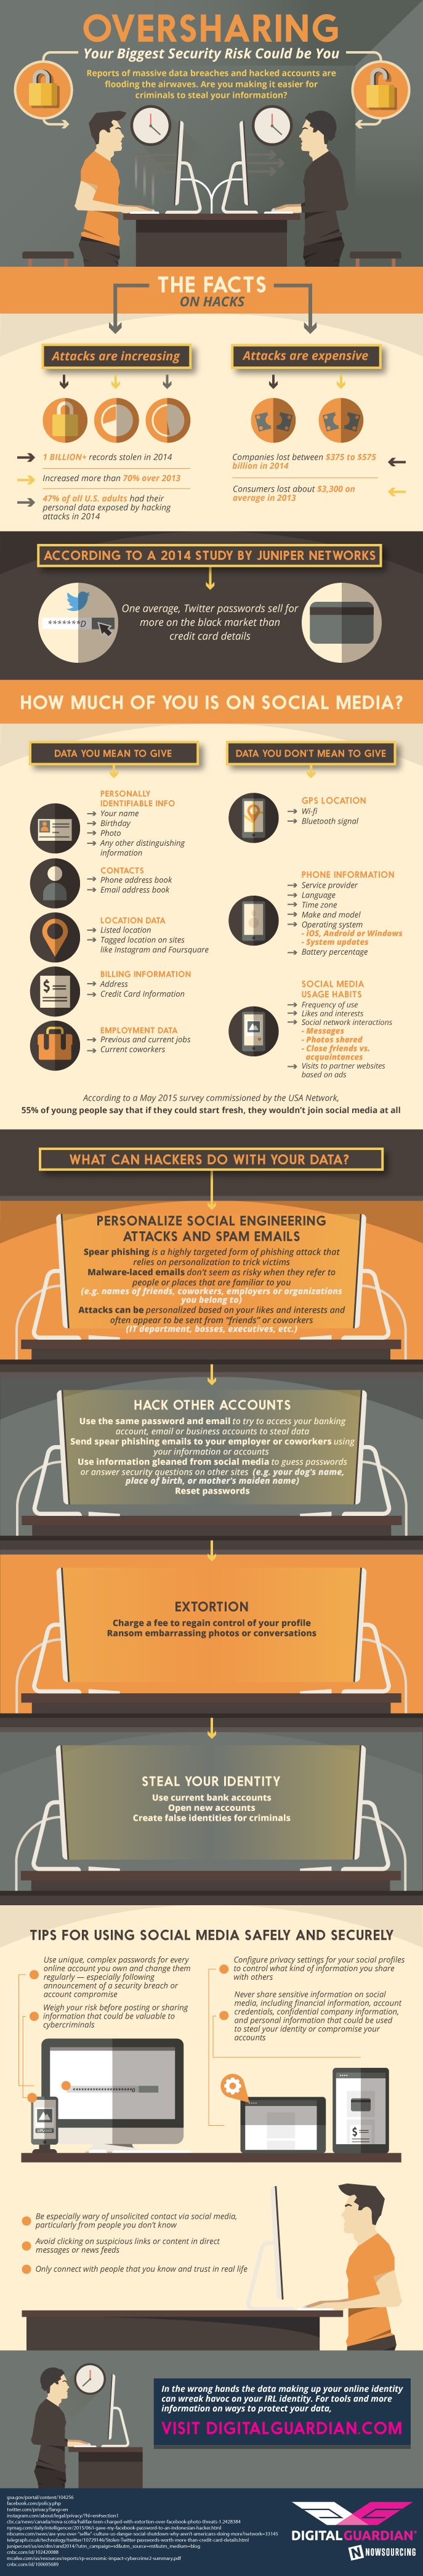 The Internet is literally filled with security risks. They come at as us from all directions, whether it's in the form of hackers, unsecure Wi-Fi connections, or anything else, there are scary things online. But the biggest threat to your security isn't someone out there trying to get you. Nope. The biggest threat to your…